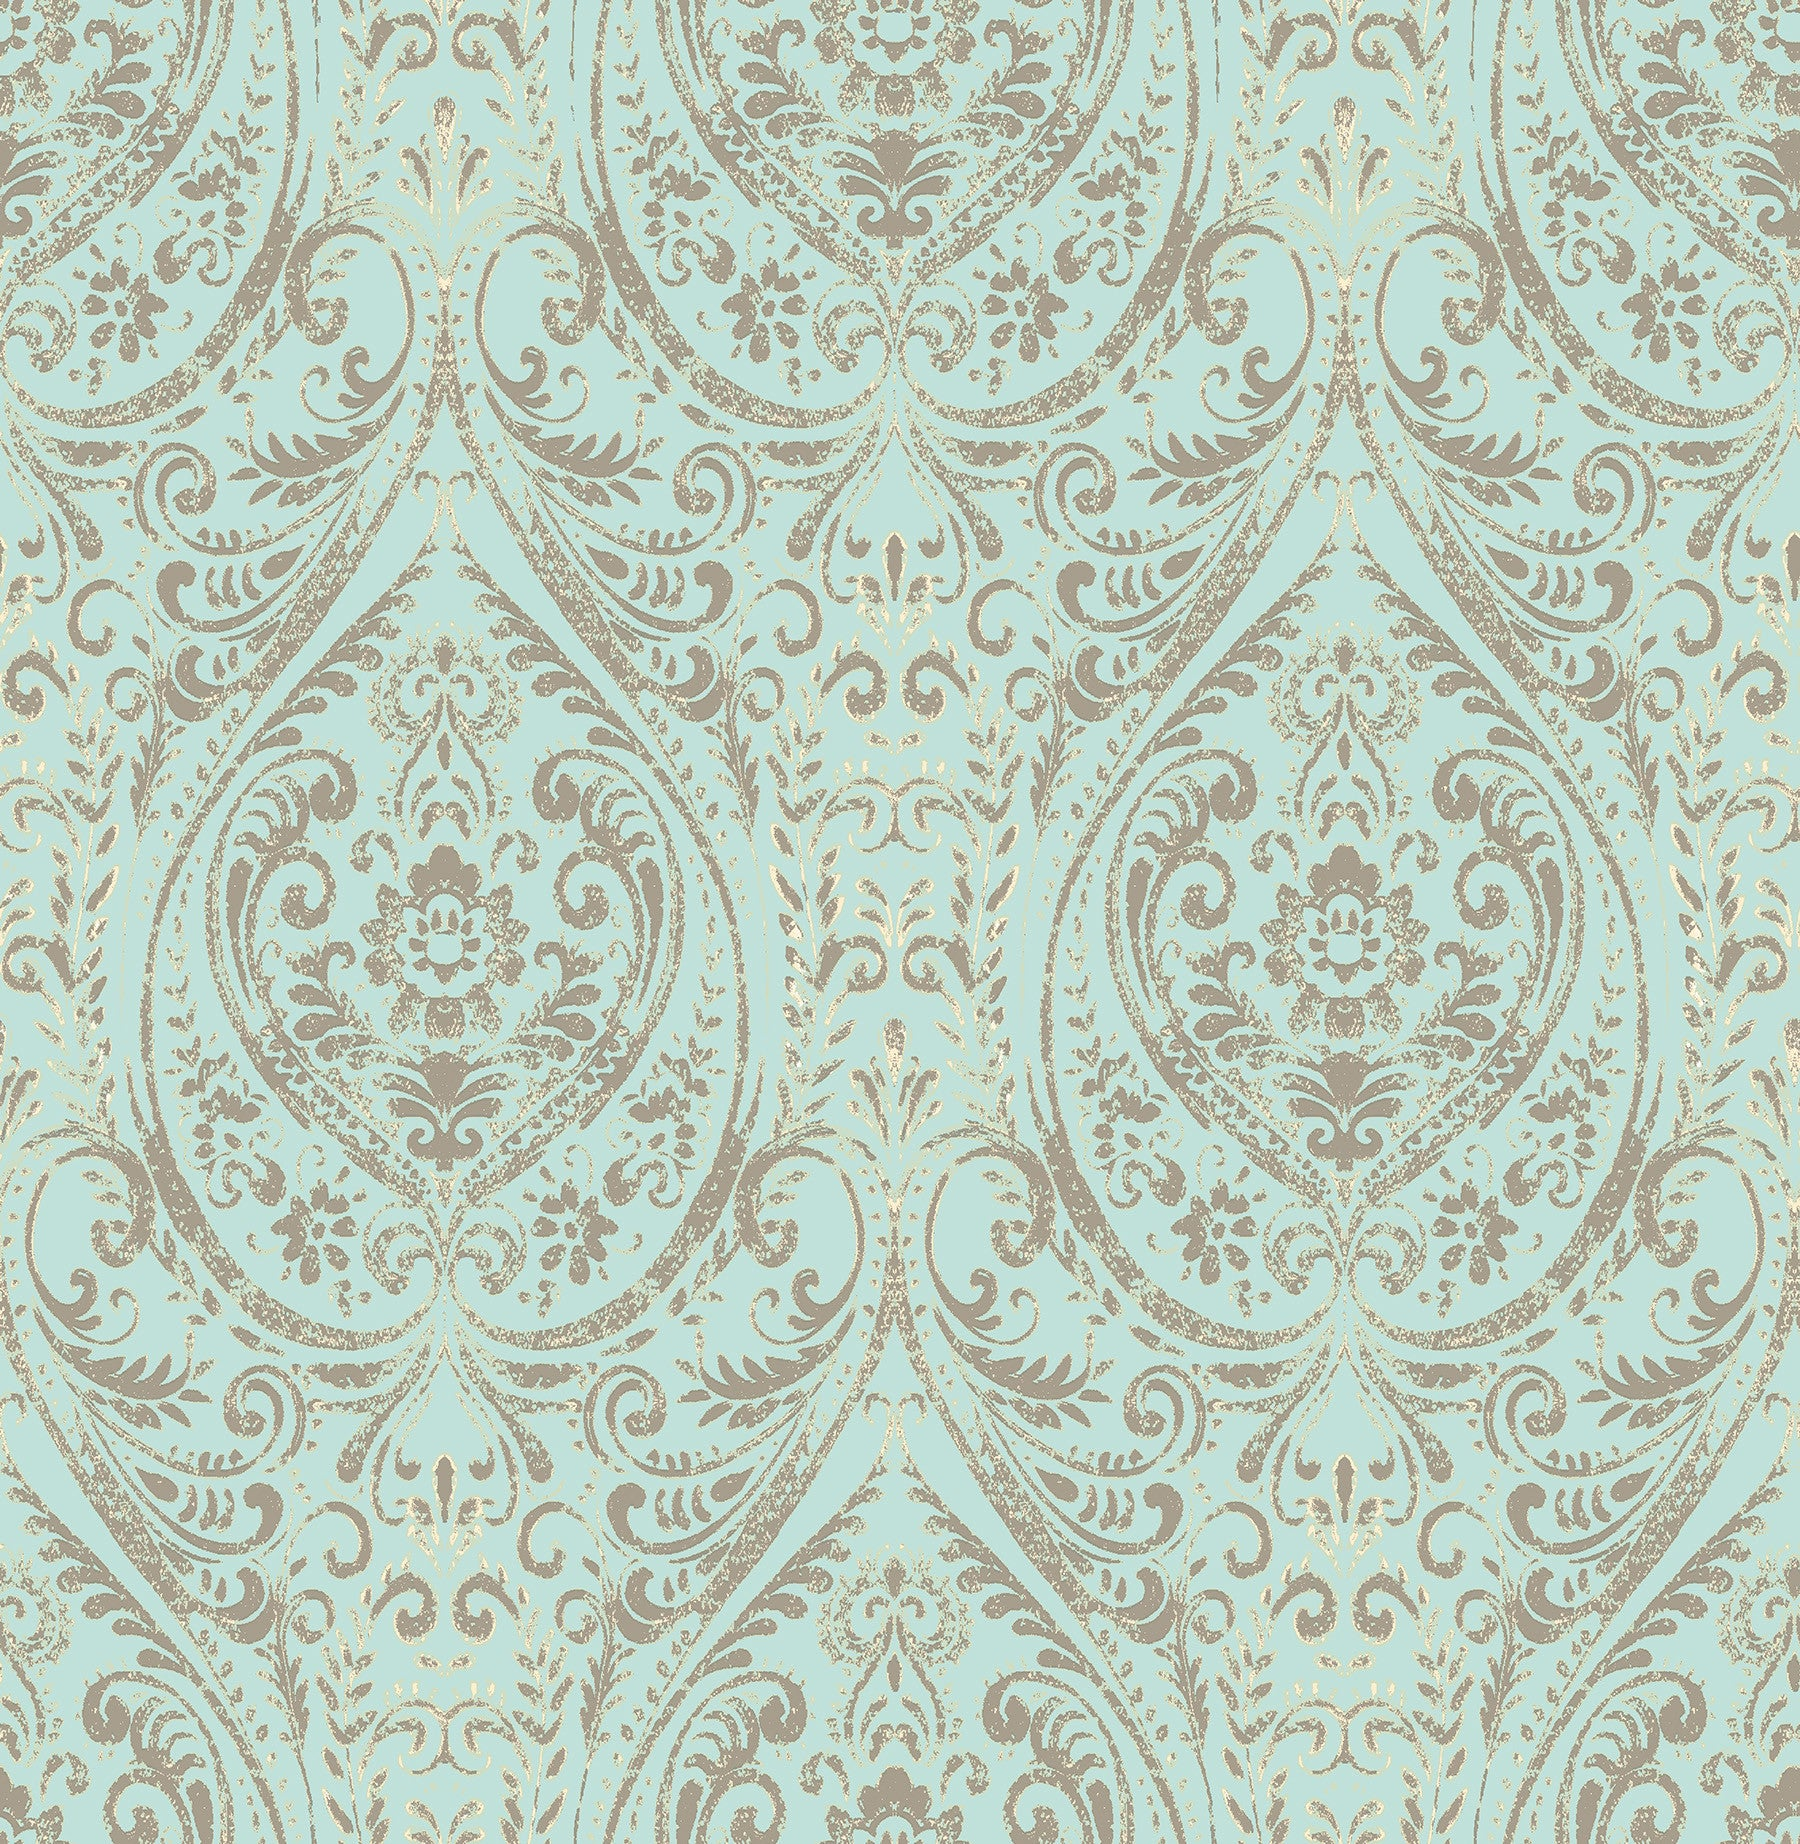 Nomad Damask Turquoise Damask Peel and Stick Wallpaper